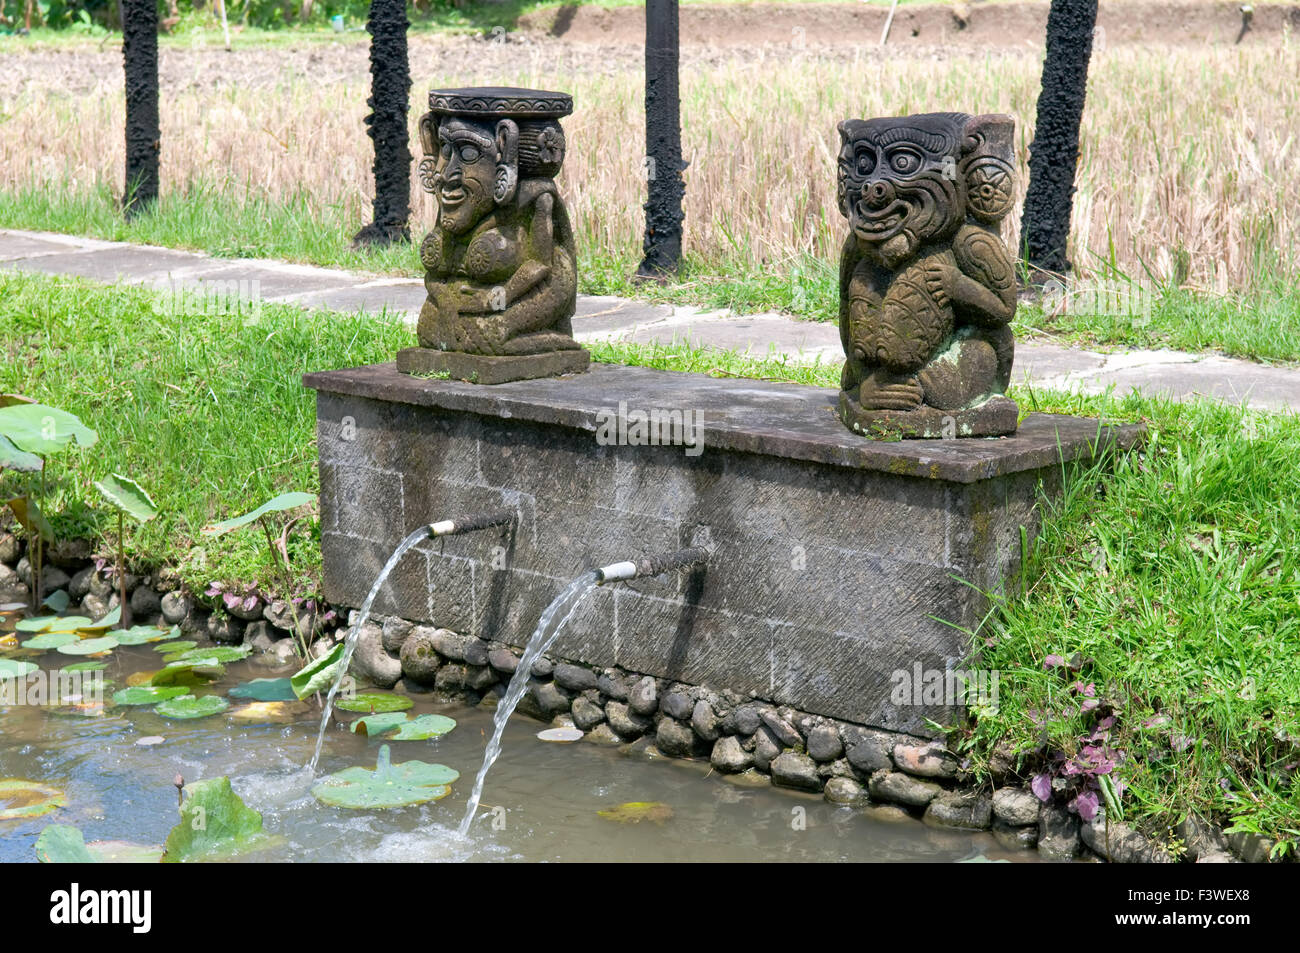 Unique fountain with balinese stone sculpture - Stock Image